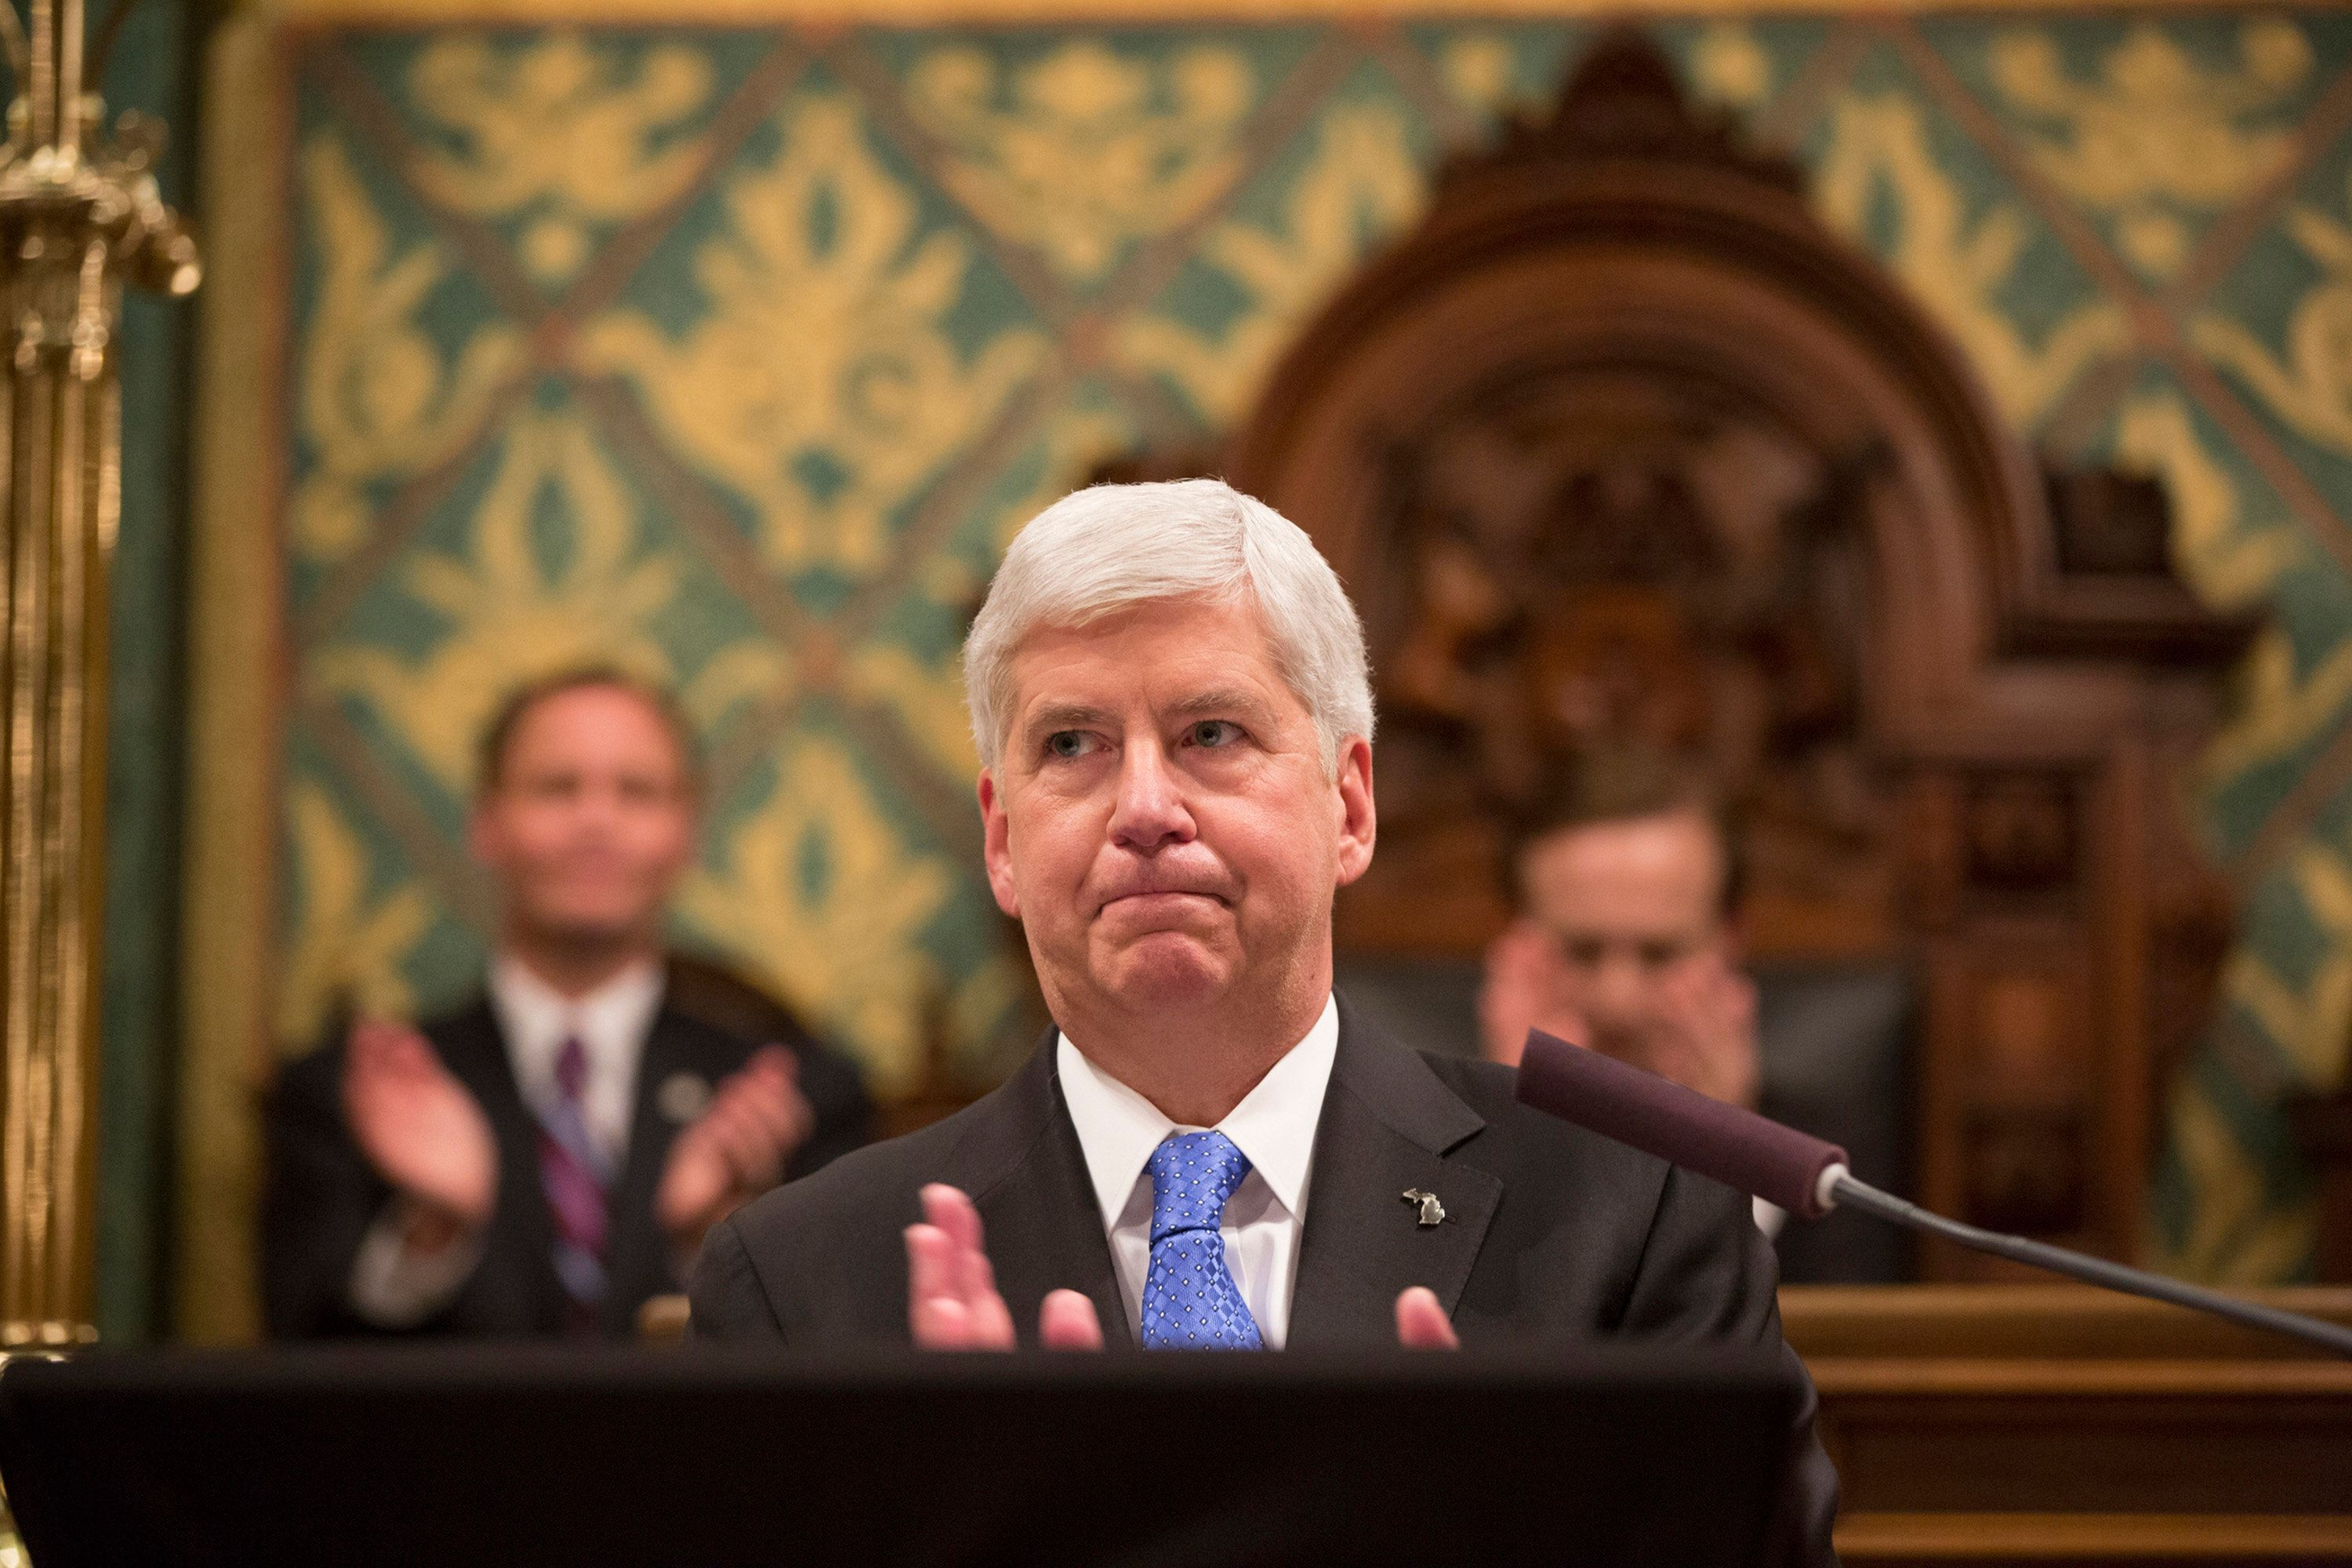 Michigan Gov. Rick Snyder delivers his State of the State in the House of Representatives Chamber on Jan. 23, 2018, at the State Capitol in Lansing, Mich. (Junfu Han/Detroit Free Press/TNS via Getty Images)